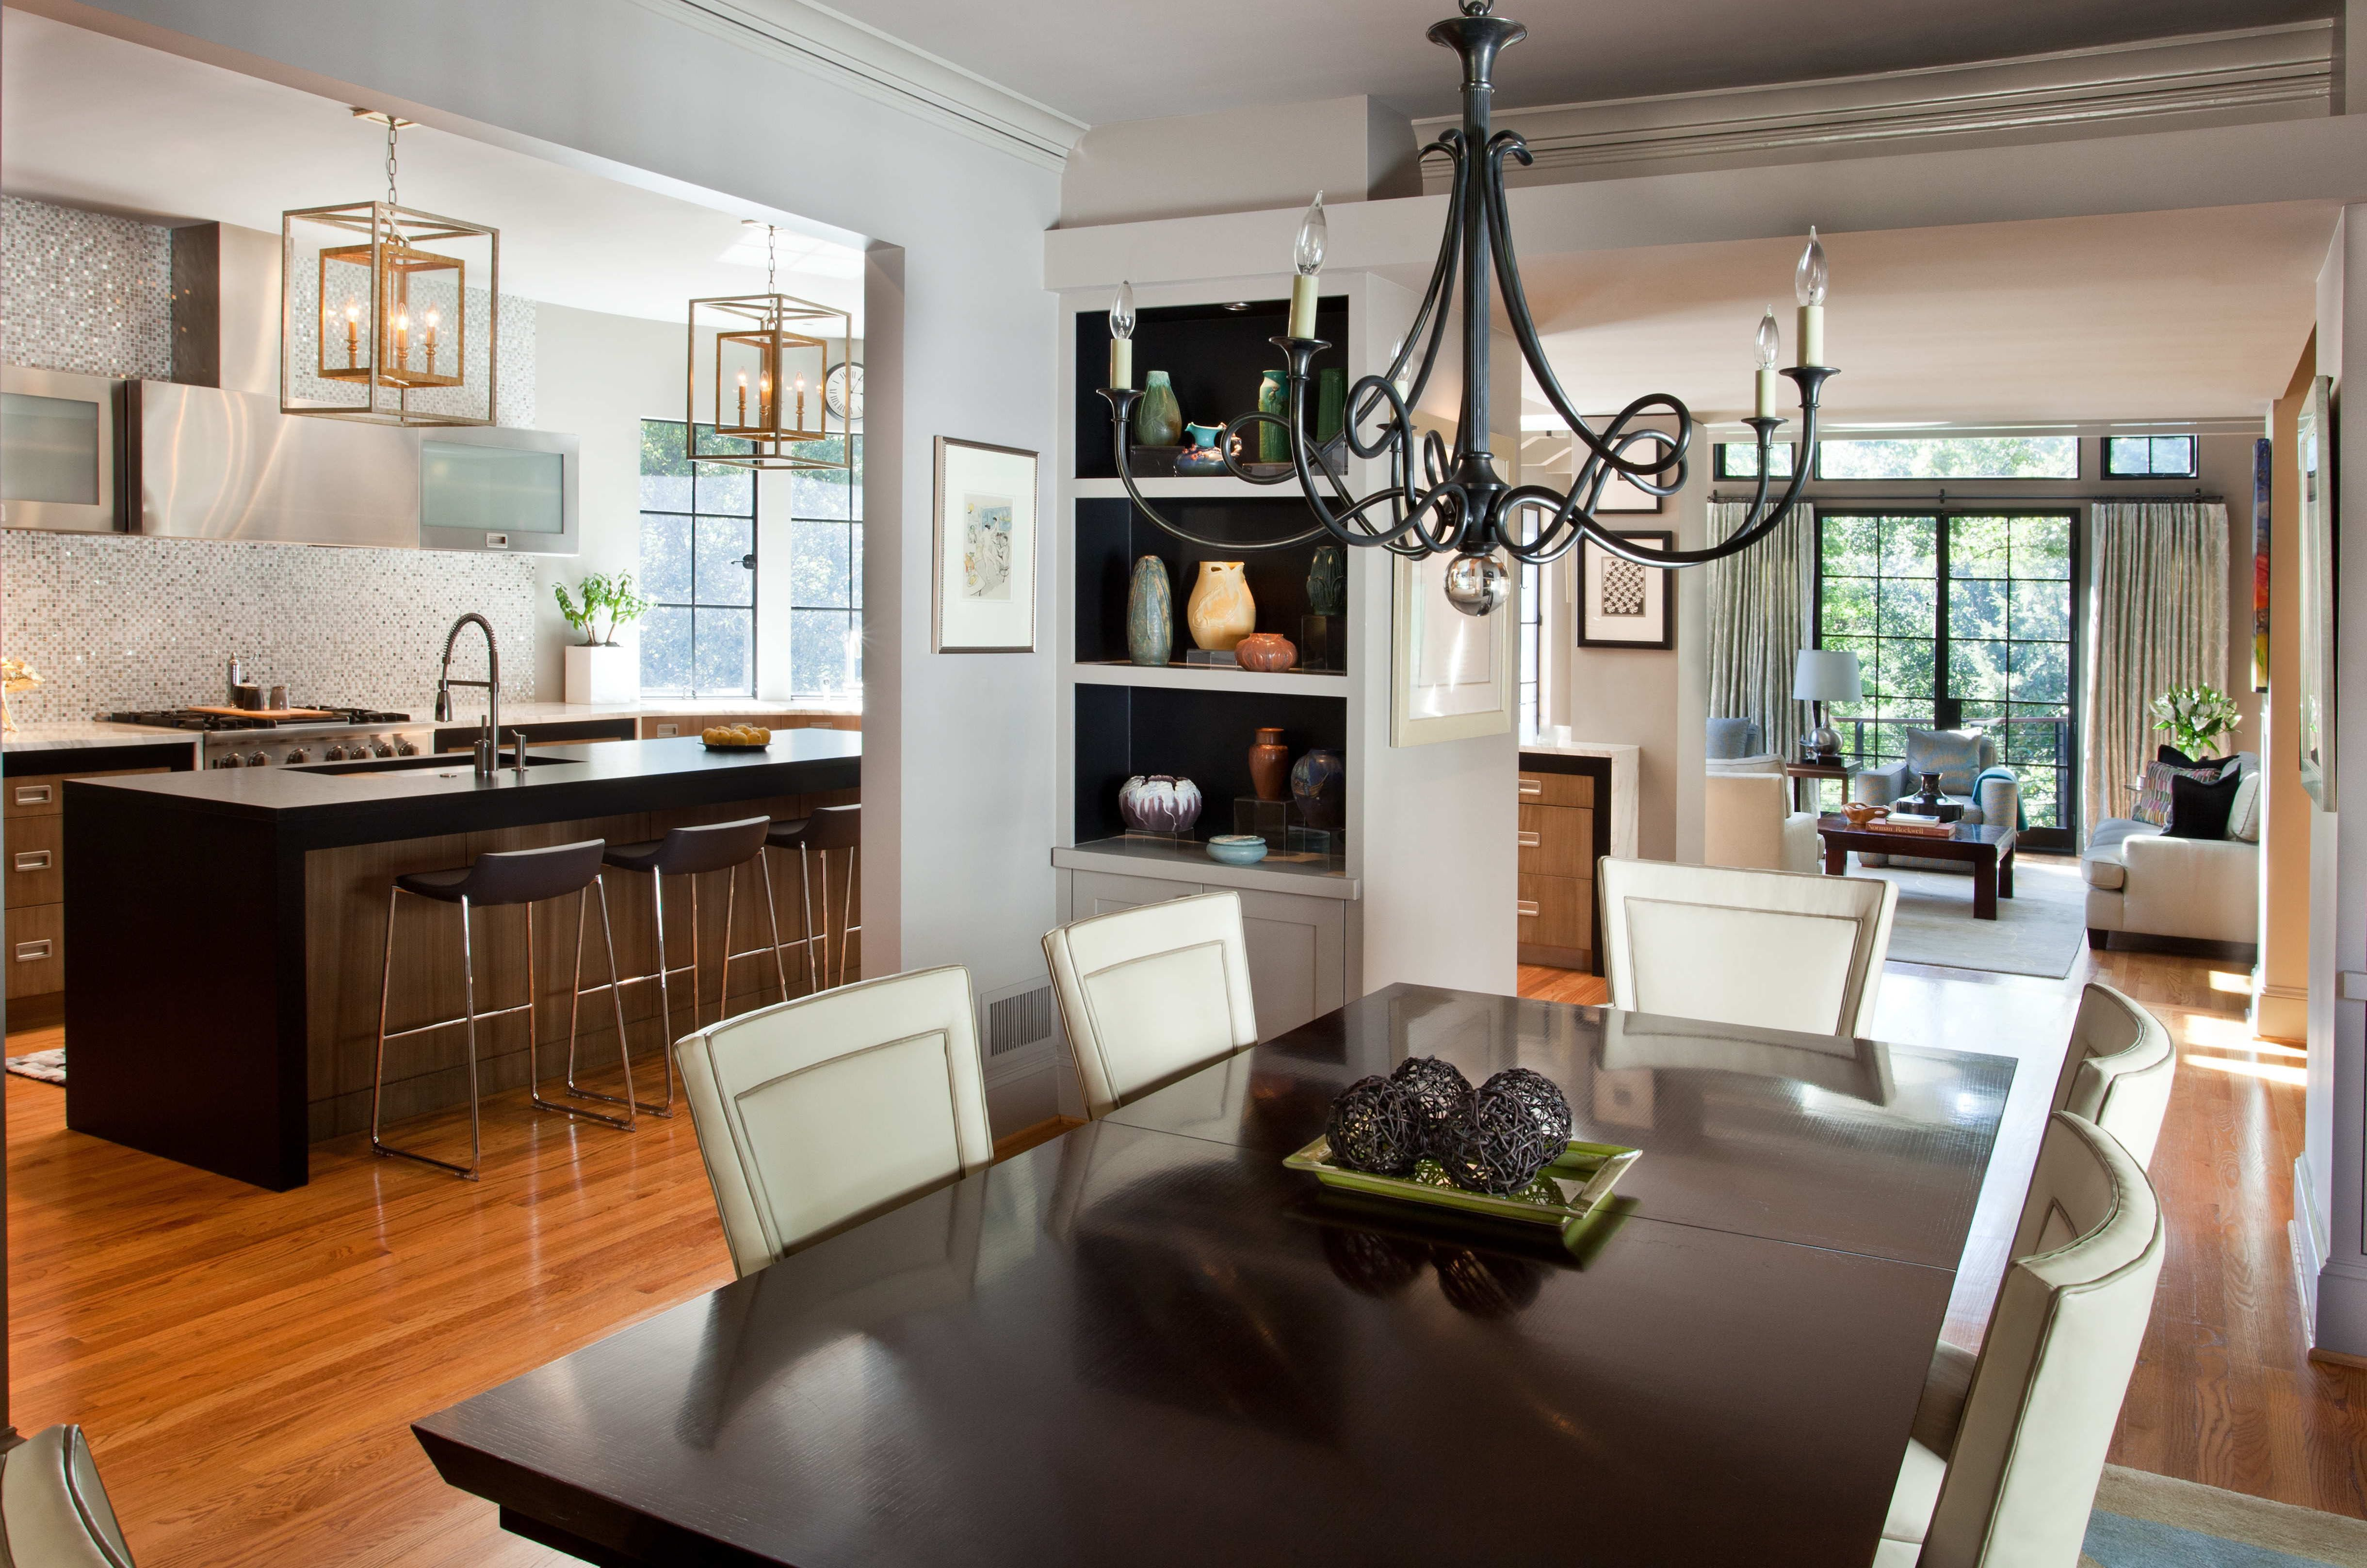 Iving Room Design And Open Floor Plan #livingroomdesign Beauteous Open Concept Living Room Dining Room And Kitchen Decorating Inspiration